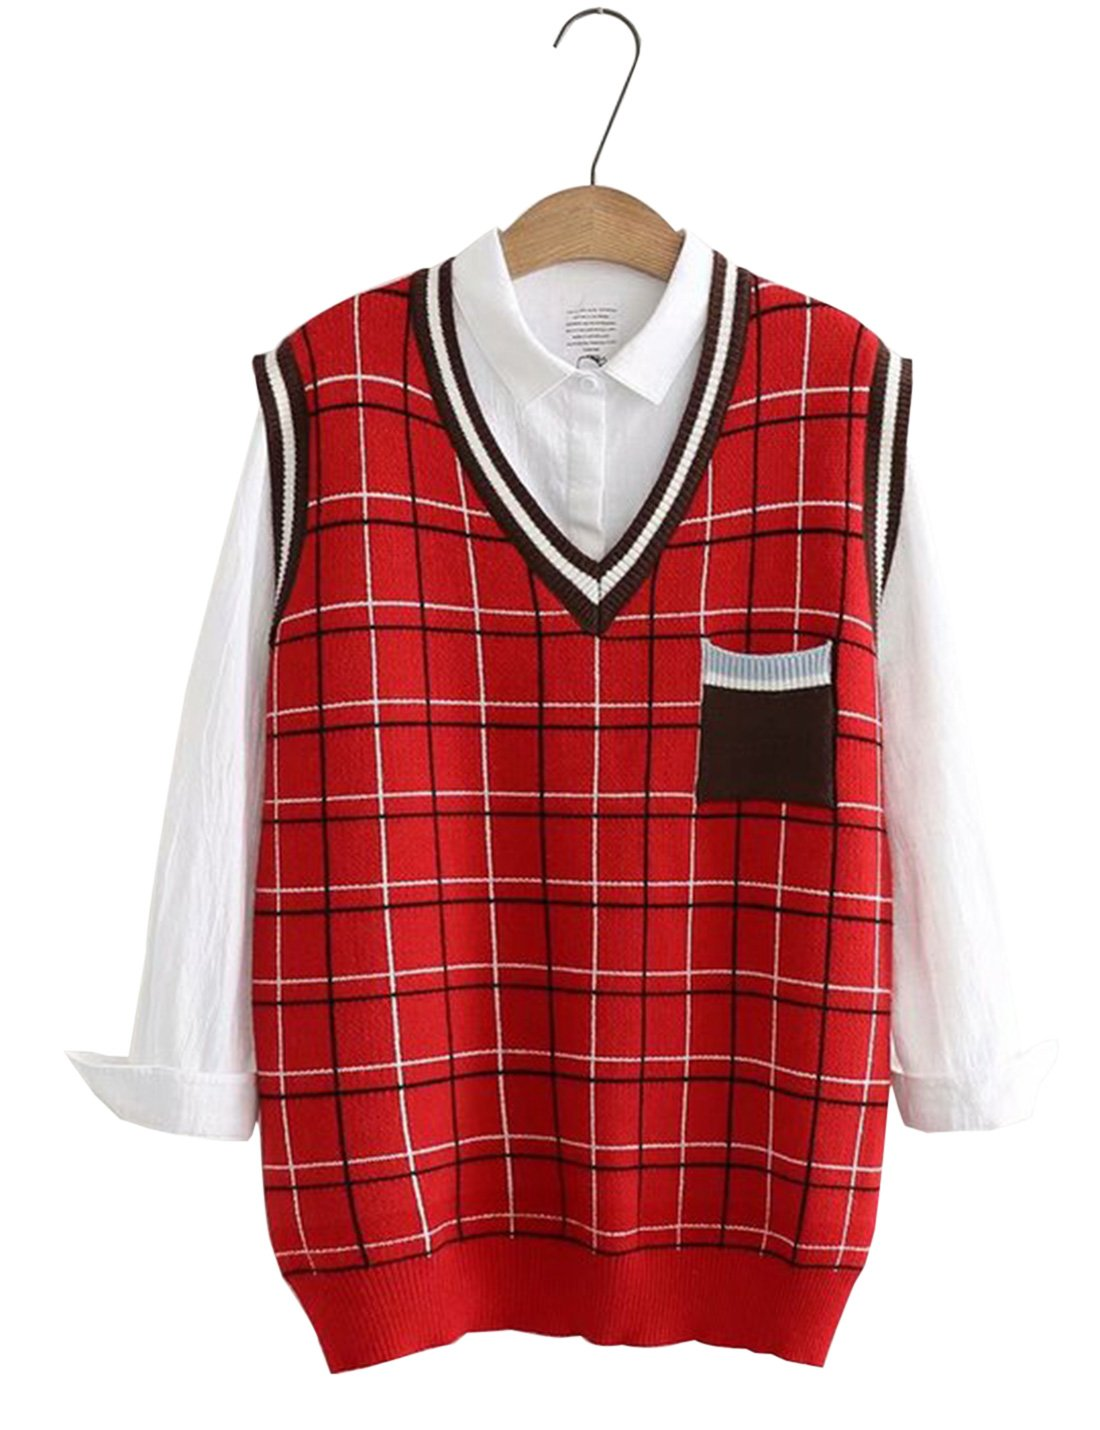 Yimoon Women's School Style Plaid V-Neck Sleeveless Knitted Pullover Sweater Vest (Red, One Size)